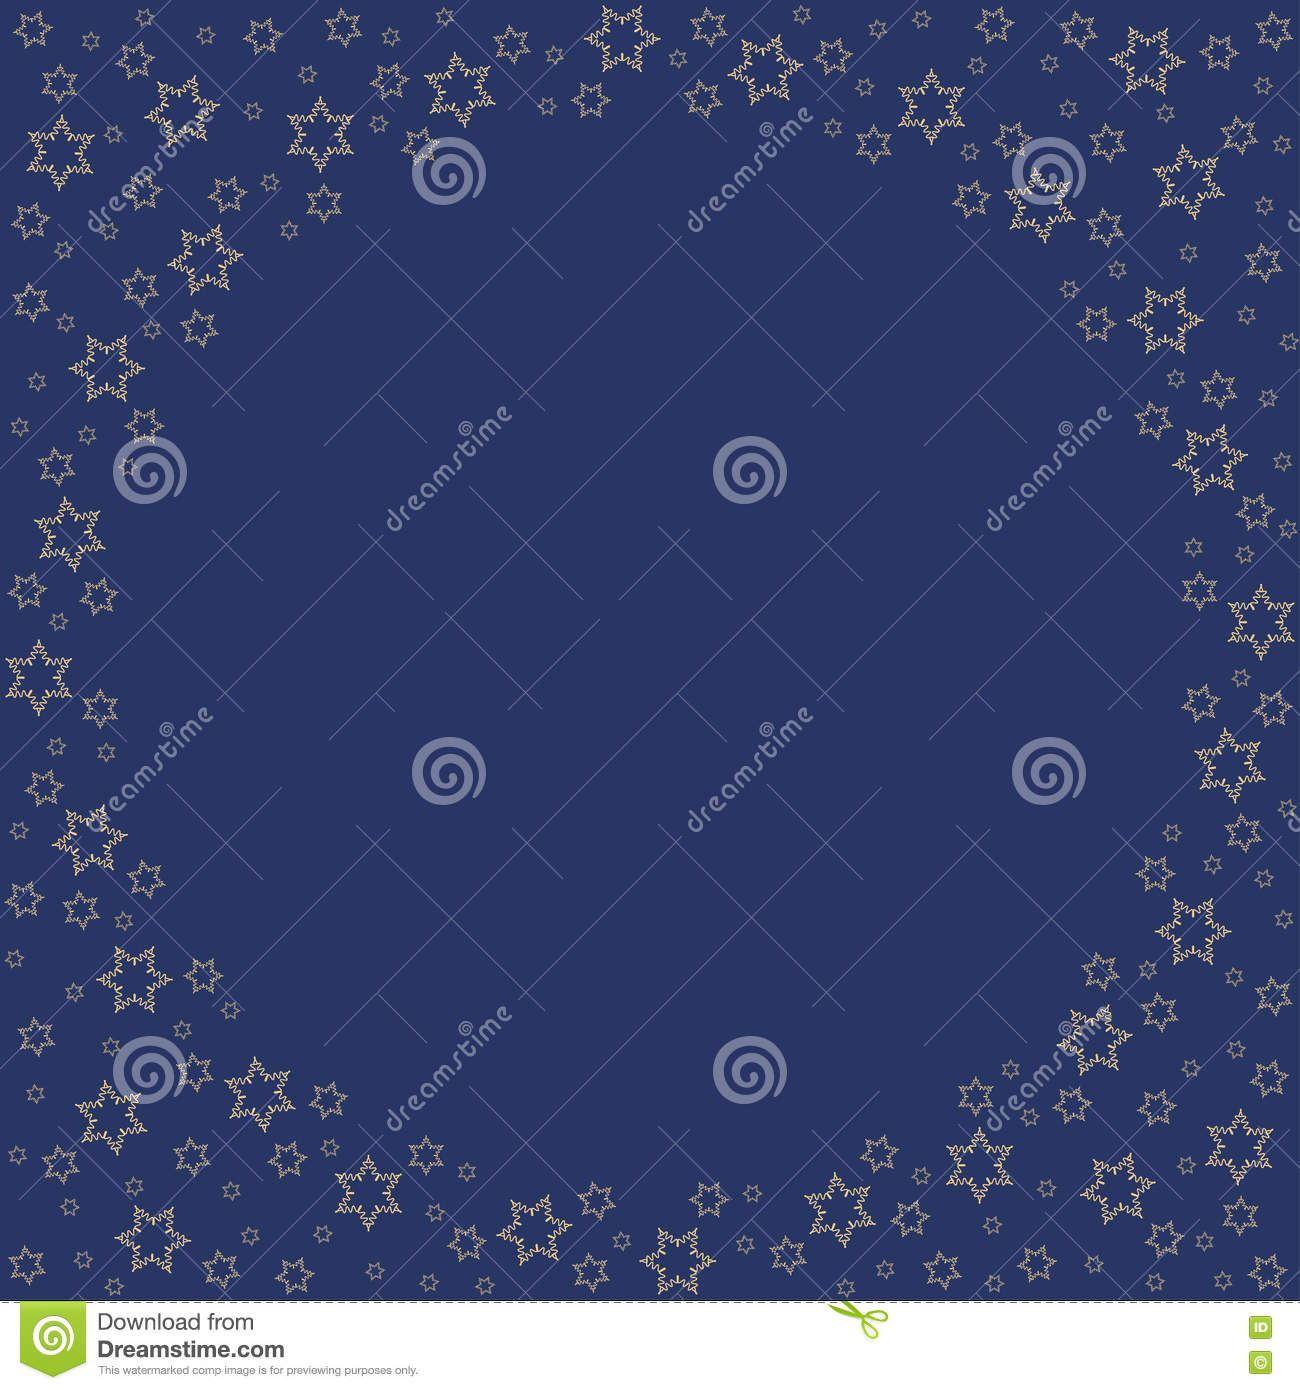 repeating golden stars silhouette pattern on the blue background border frame with space for text christmas